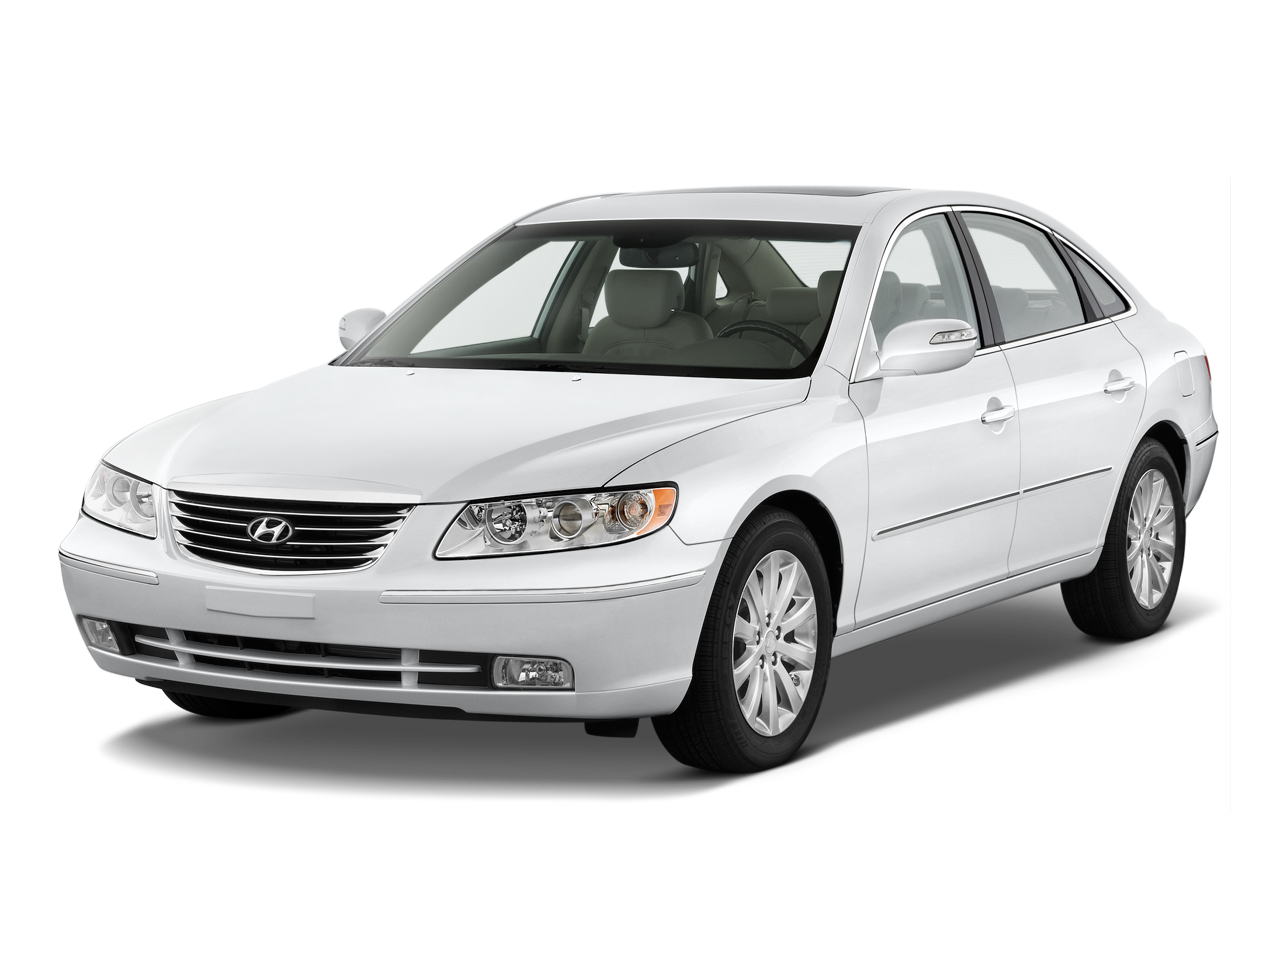 2006-2009 Hyundai Azera Recalled for Potential Air Bag ...